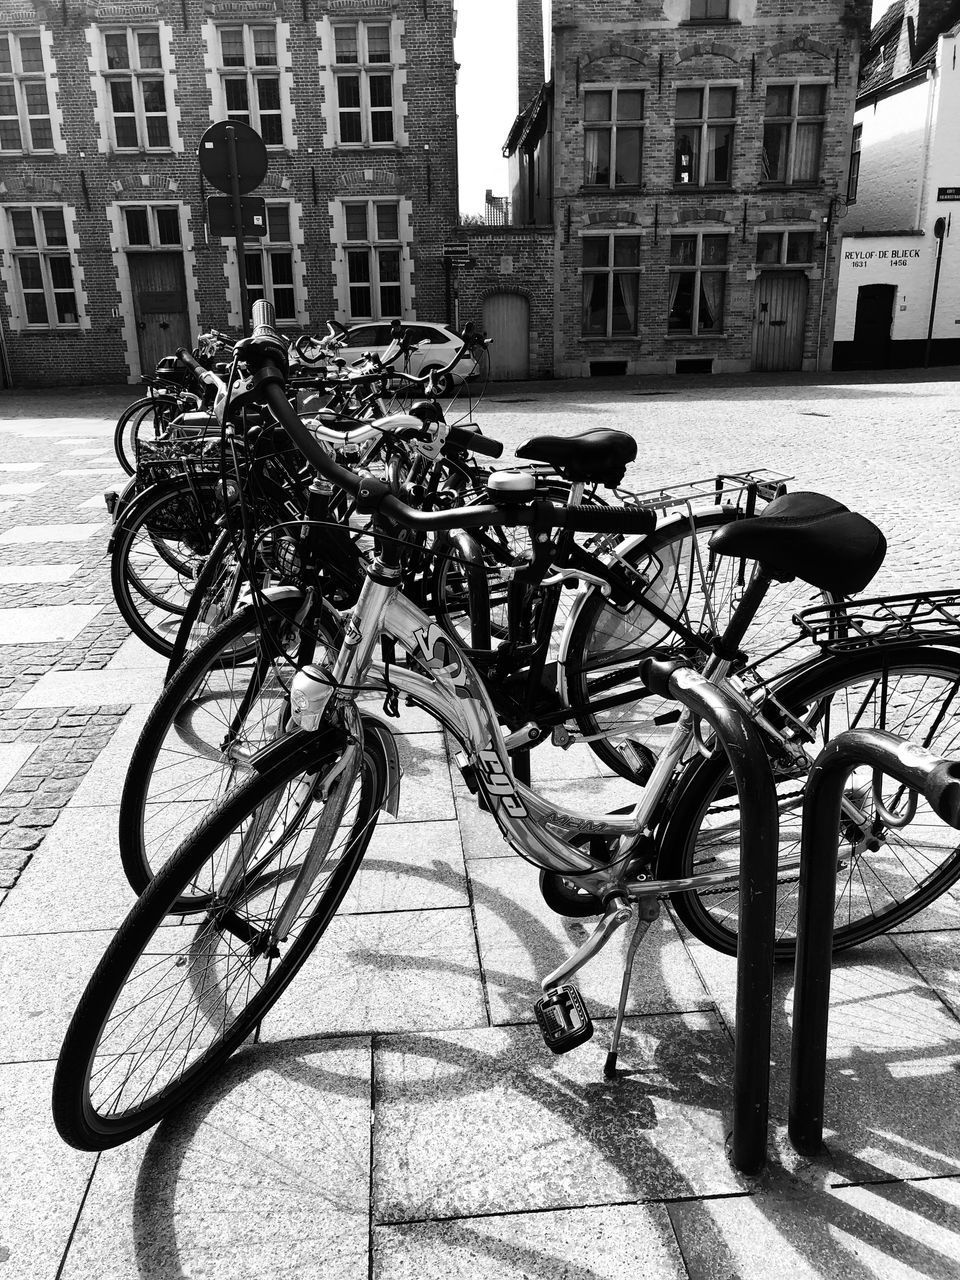 architecture, bicycle, city, building exterior, built structure, land vehicle, transportation, mode of transportation, street, building, stationary, day, parking, no people, outdoors, sidewalk, footpath, nature, city life, shadow, wheel